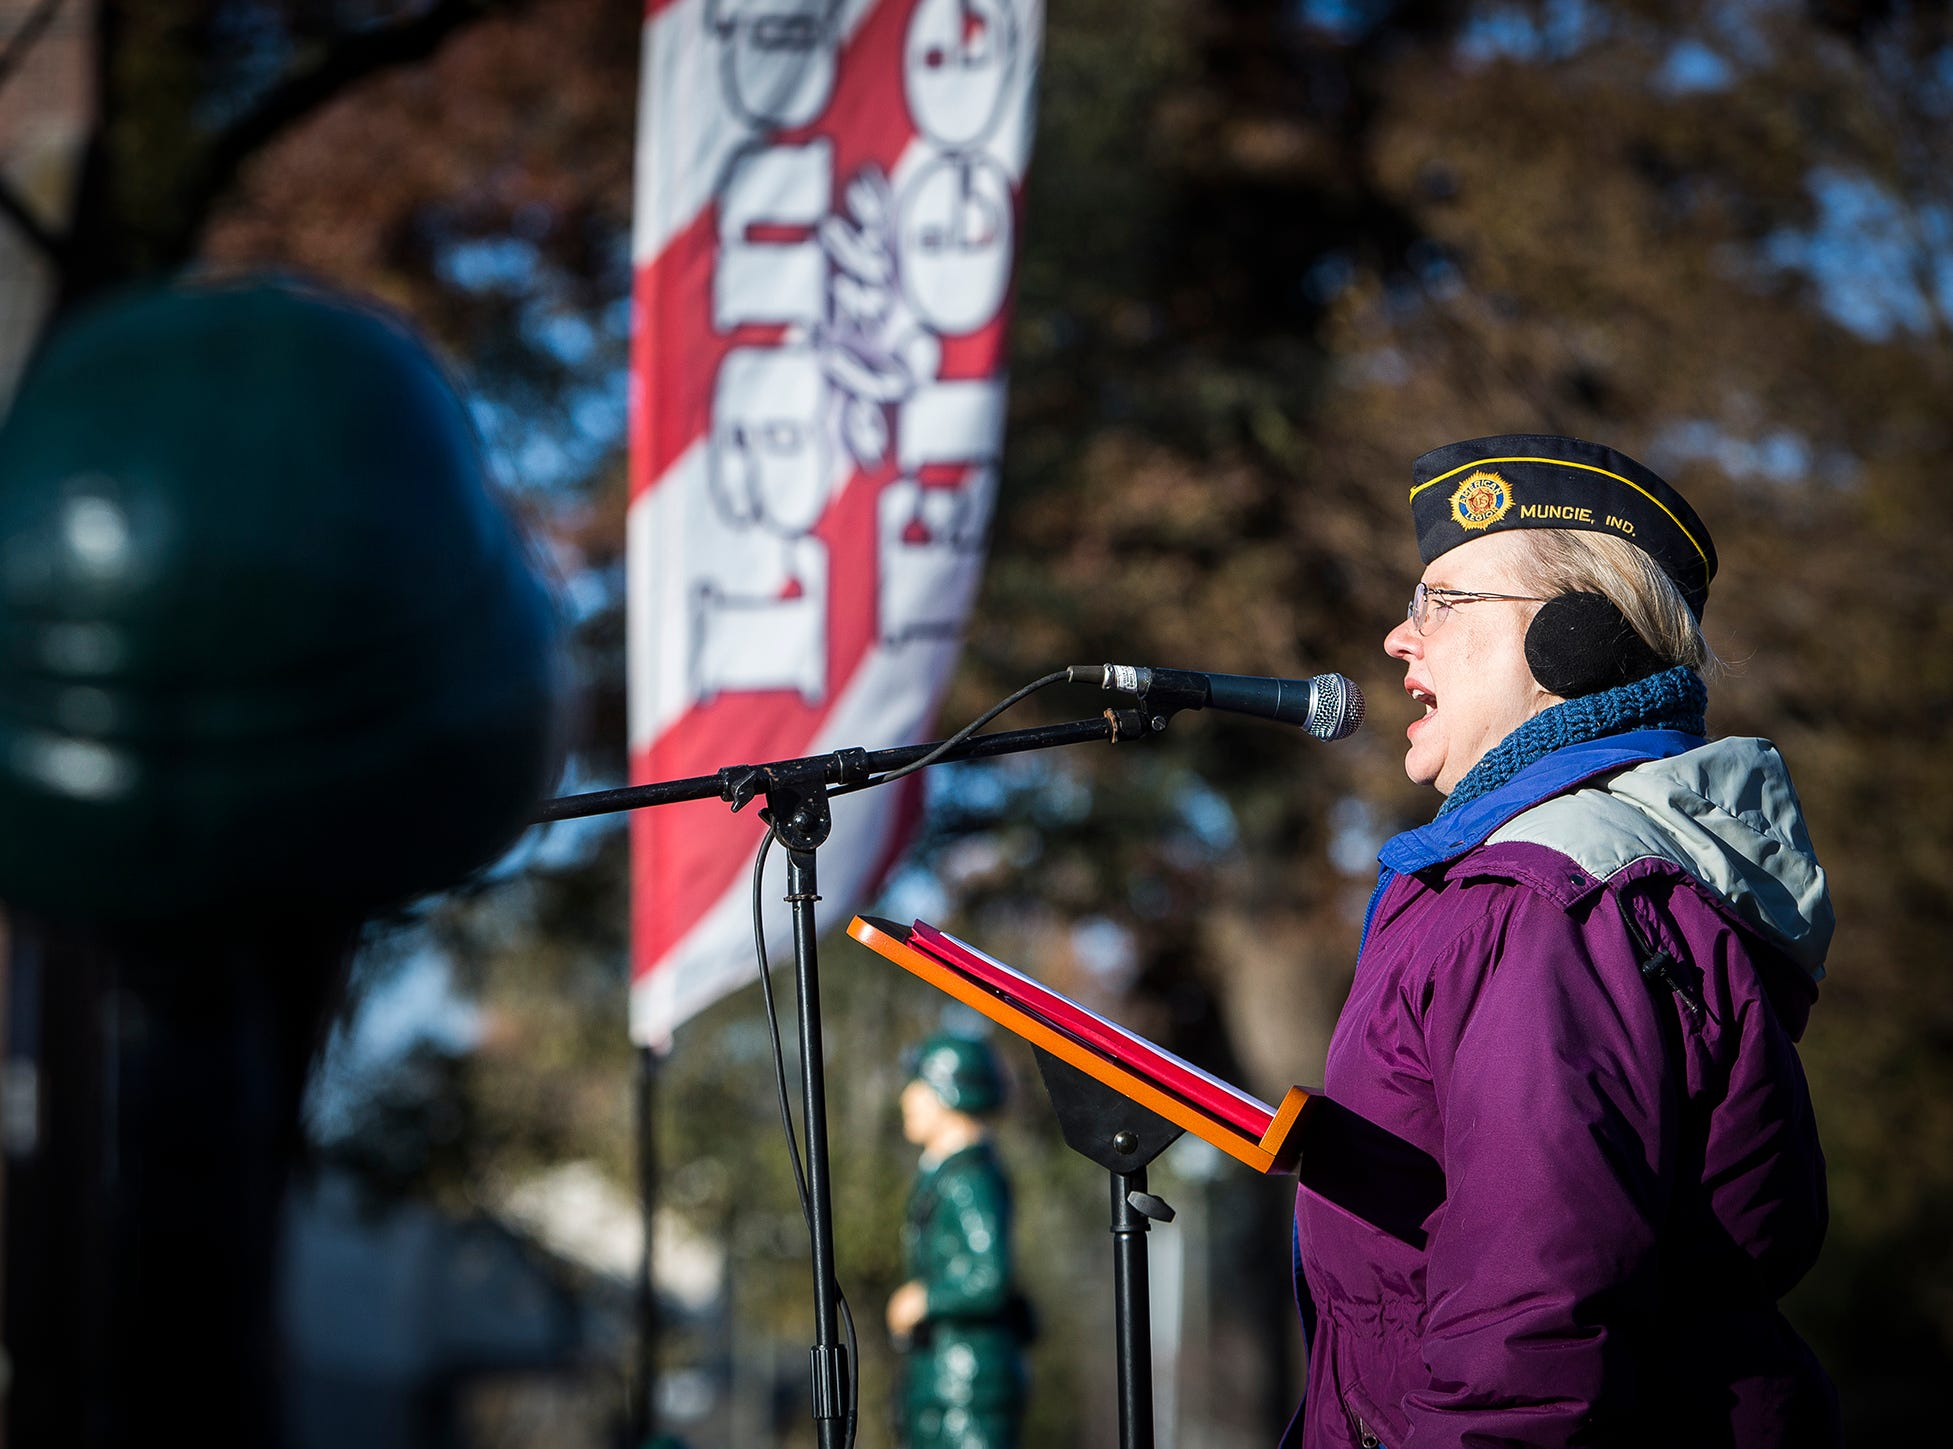 Veteran Ruth Berkey sings the National Anthem during the Delaware County Veterans Day Service at Heekin Park Sunday morning. The Delaware County Honor Guard performed a rifle salute during the ceremony and Chaplin Hank Hansen led attendees in a prayer for veterans.